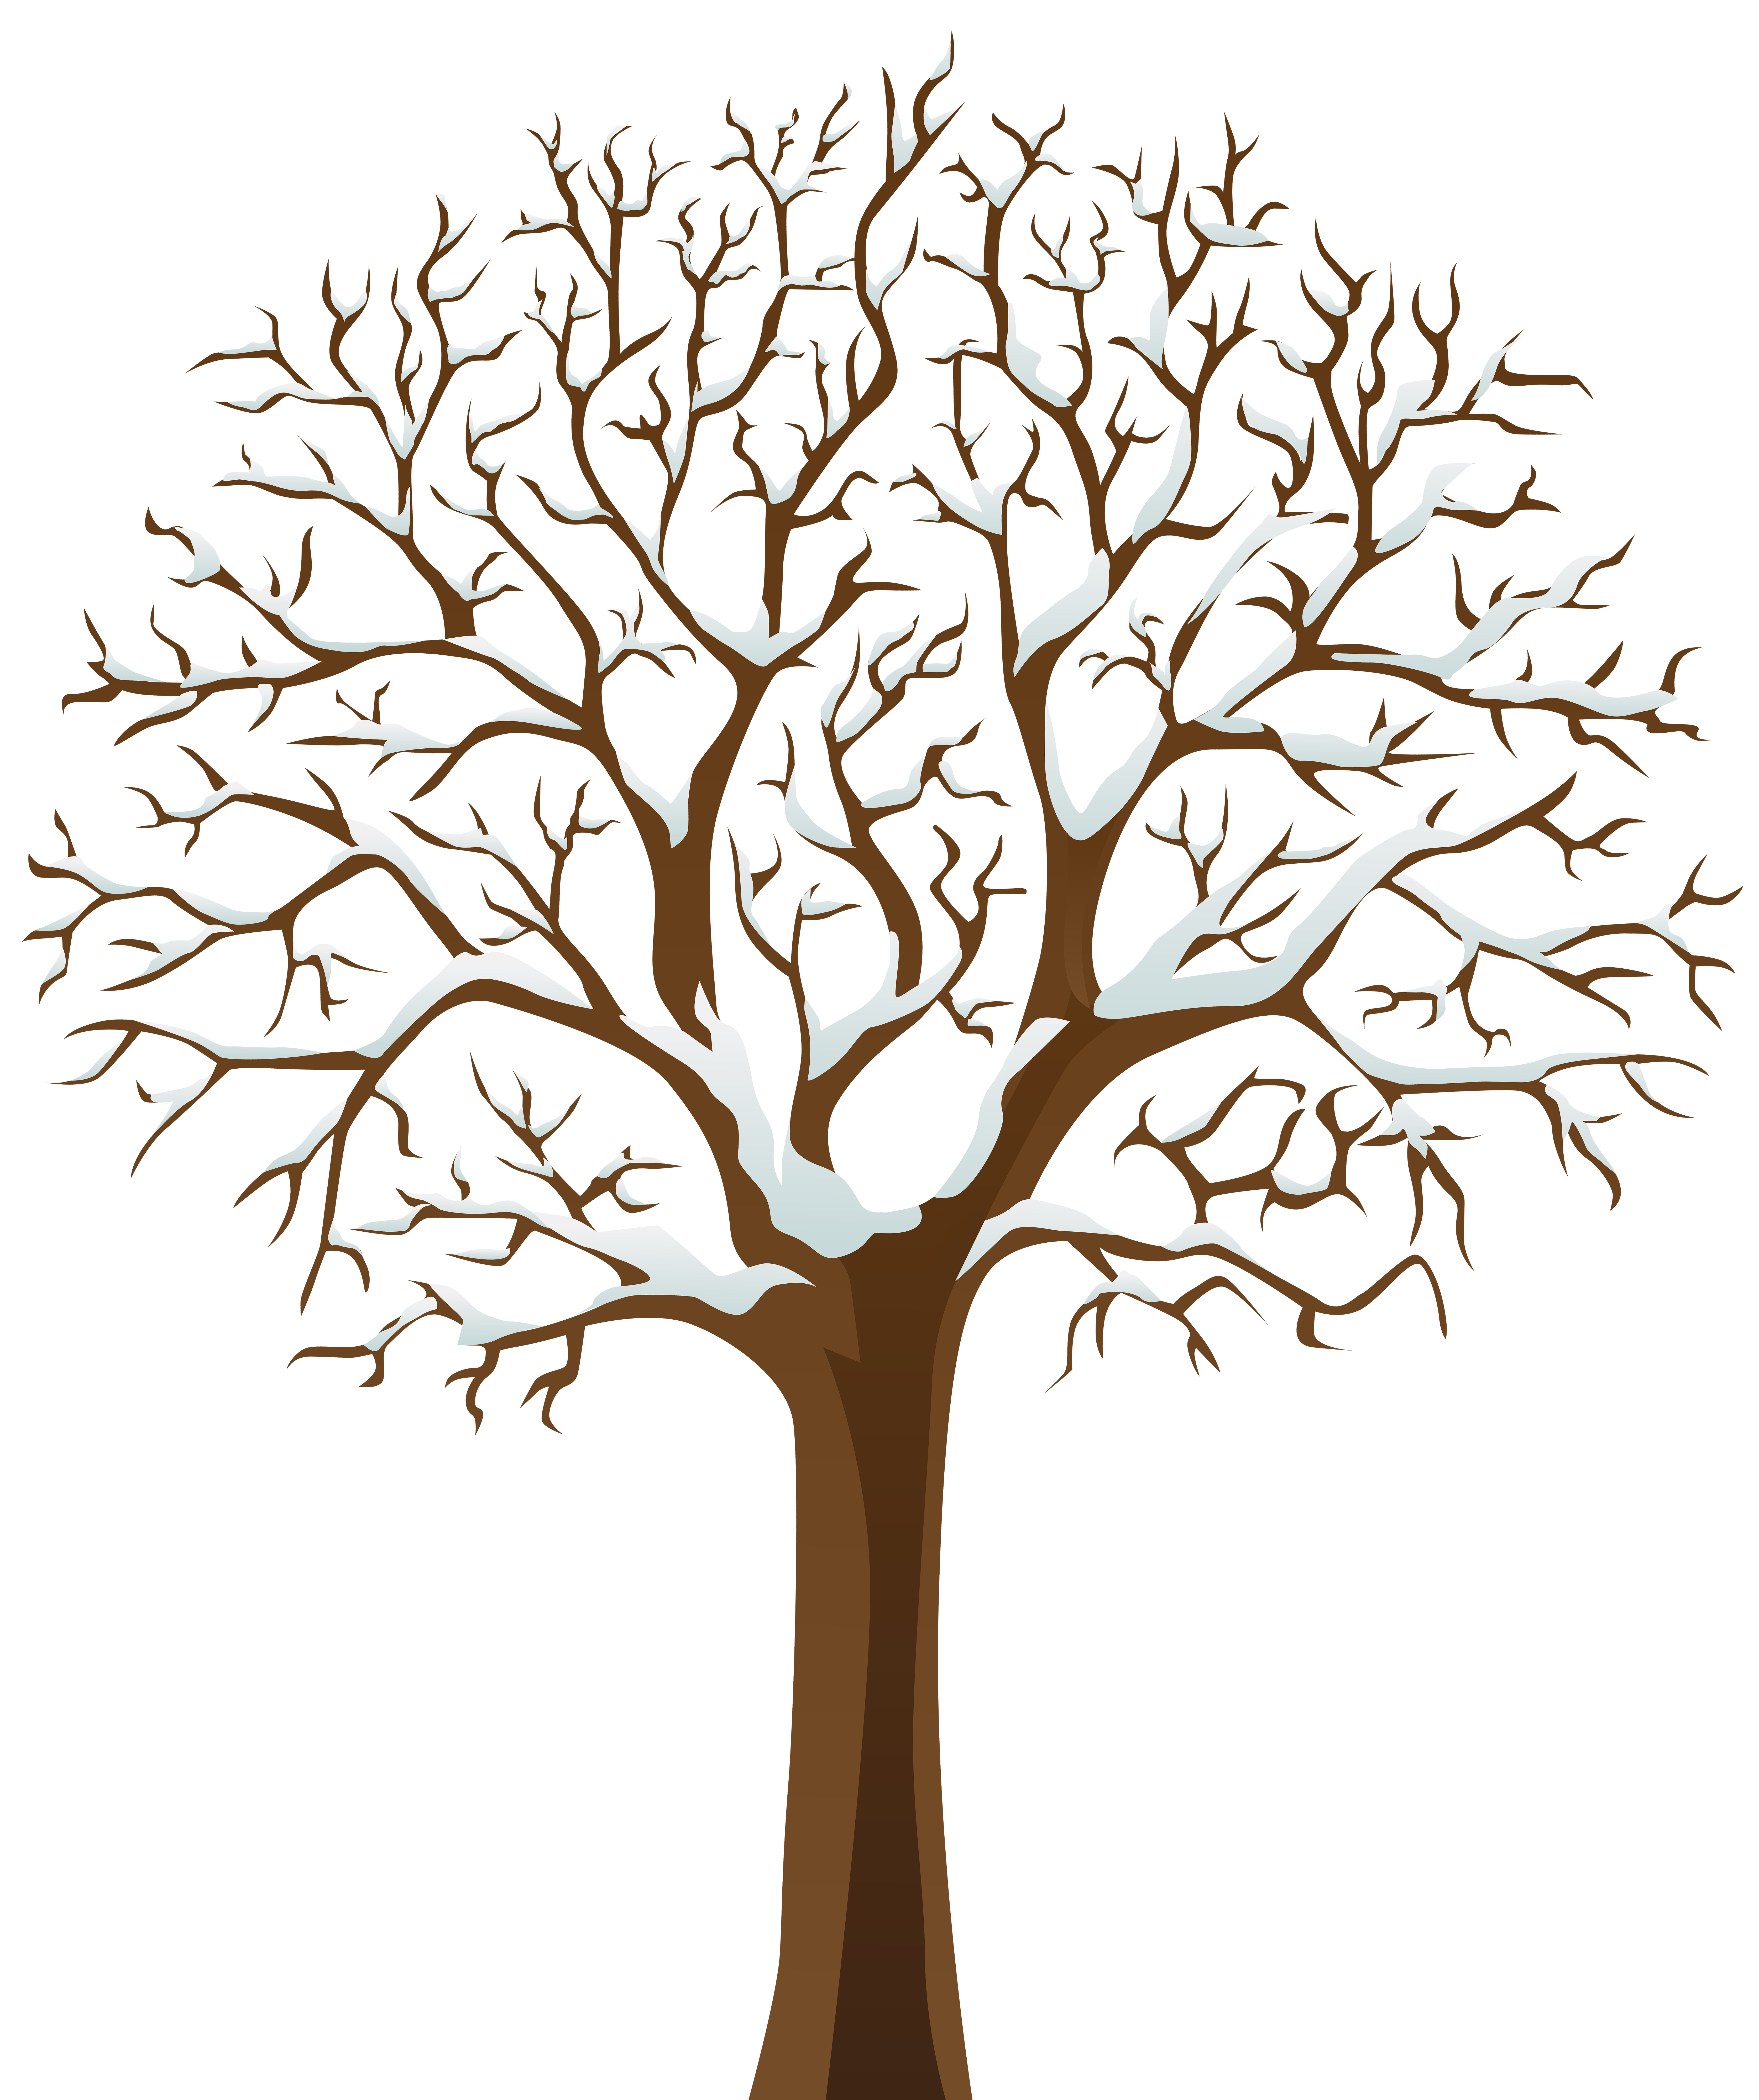 Winter transparent clipart clipart free Snowy Winter Tree Transparent PNG Image | Gallery ... clipart free